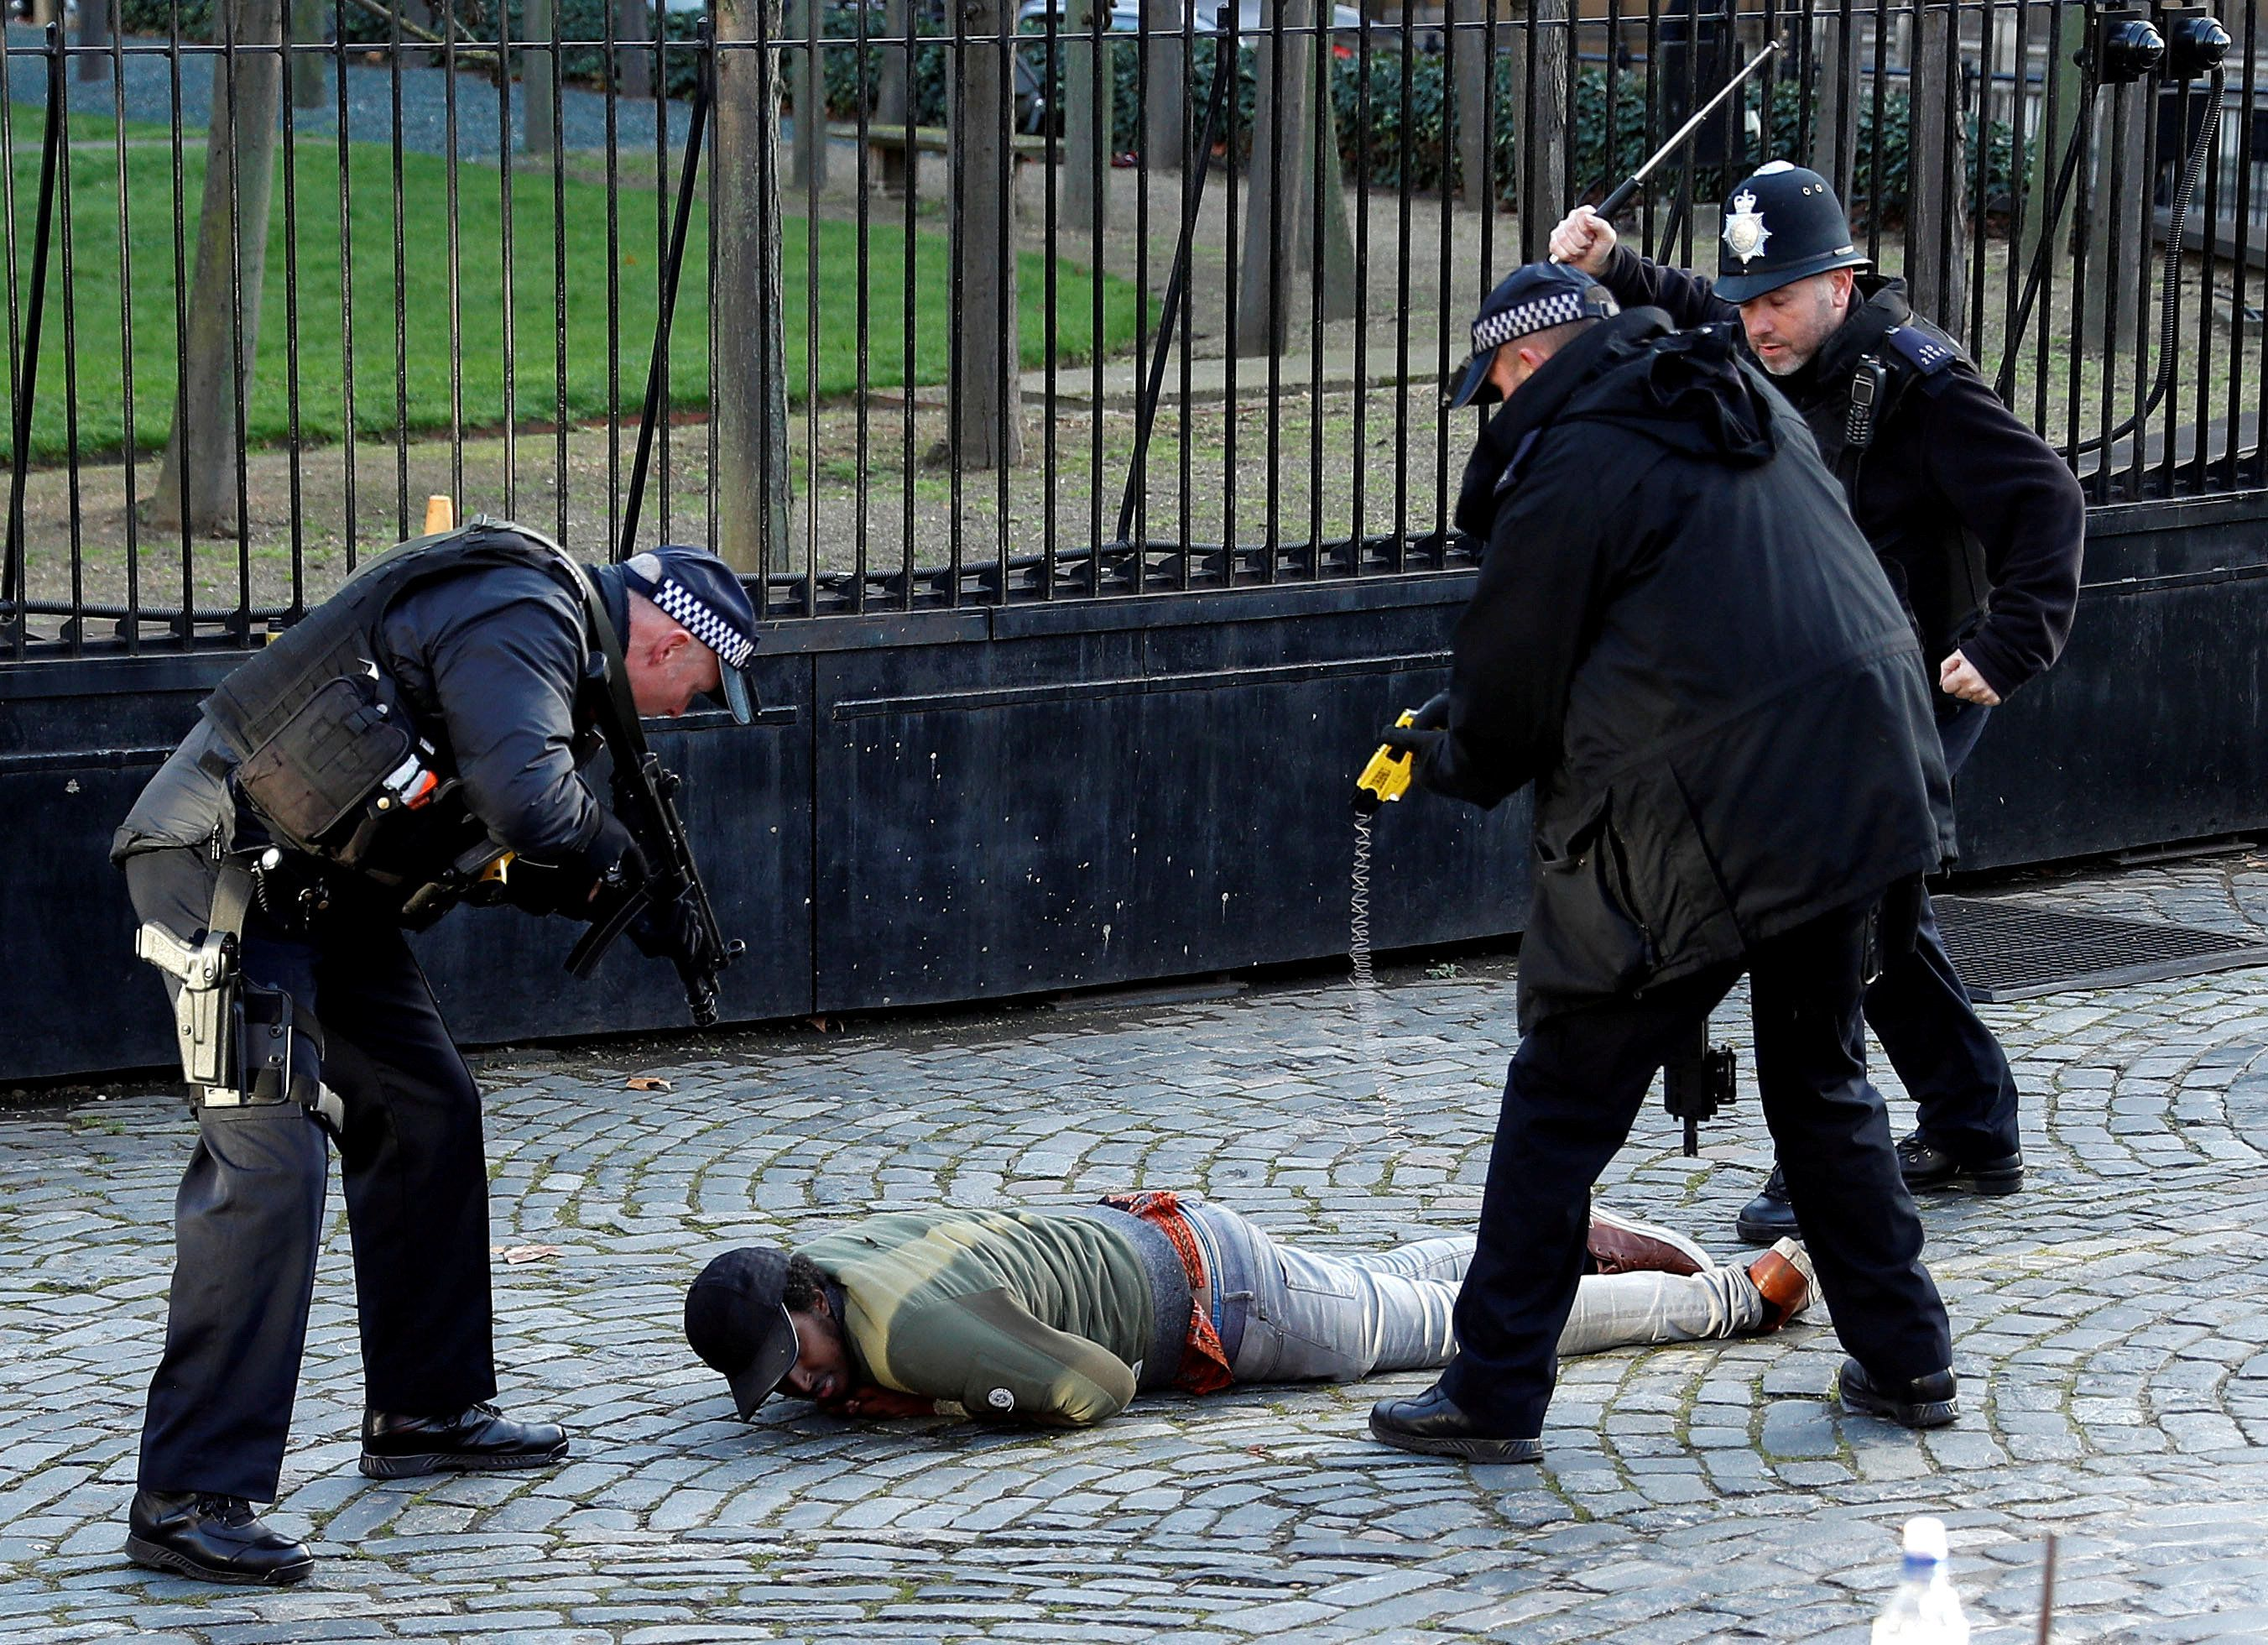 Man Tasered By Police At Gates Of